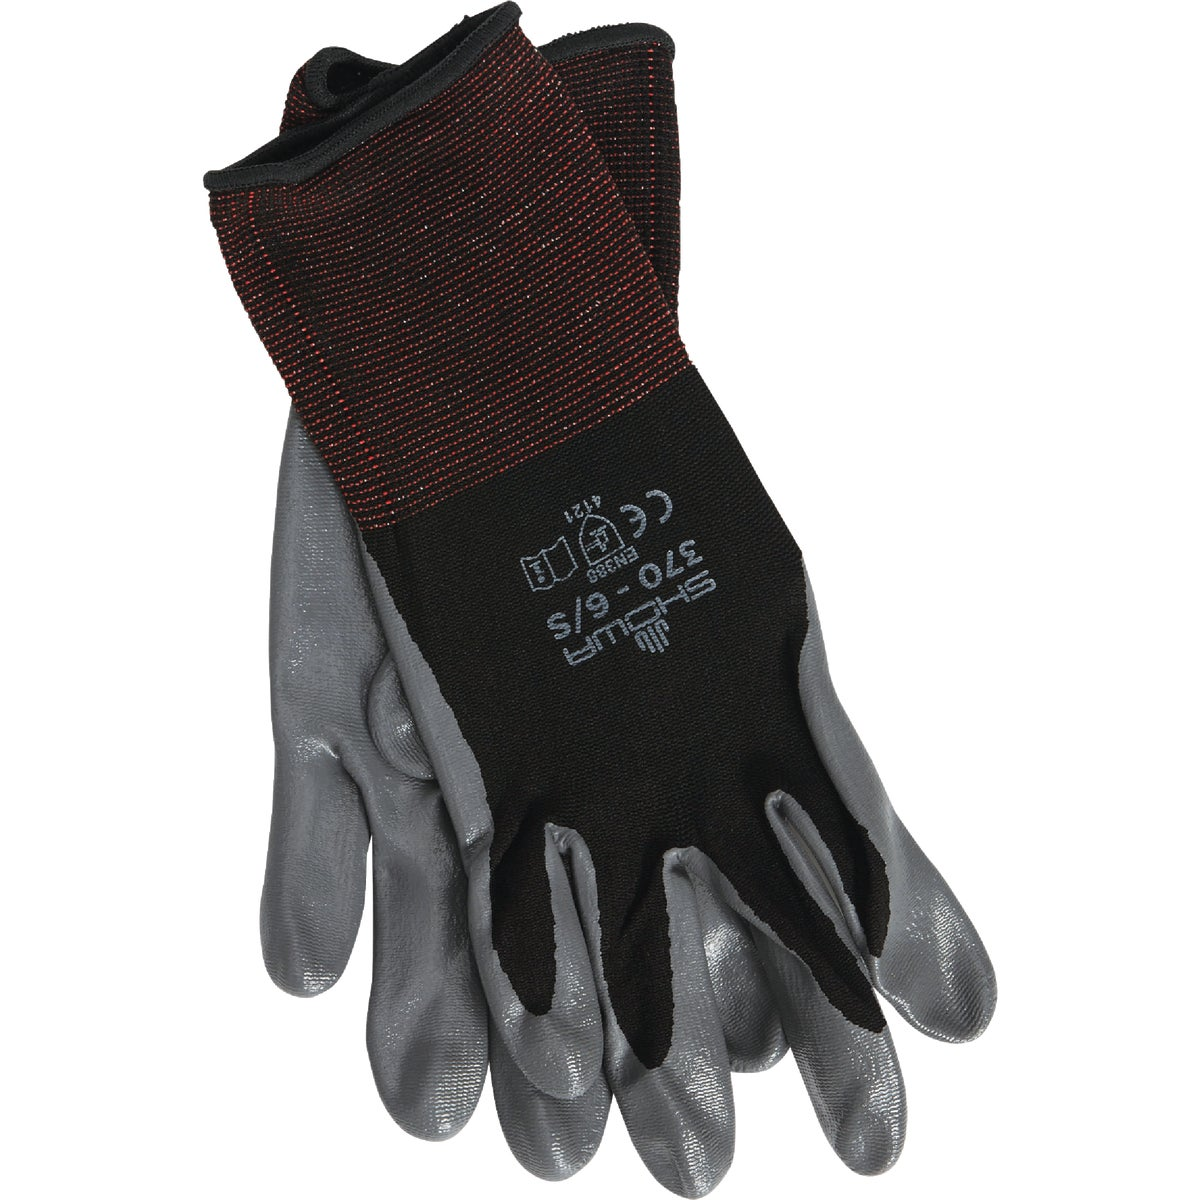 SML BLK NITRILE GLOVE - 370BS-06.RT by Showa Best Glove